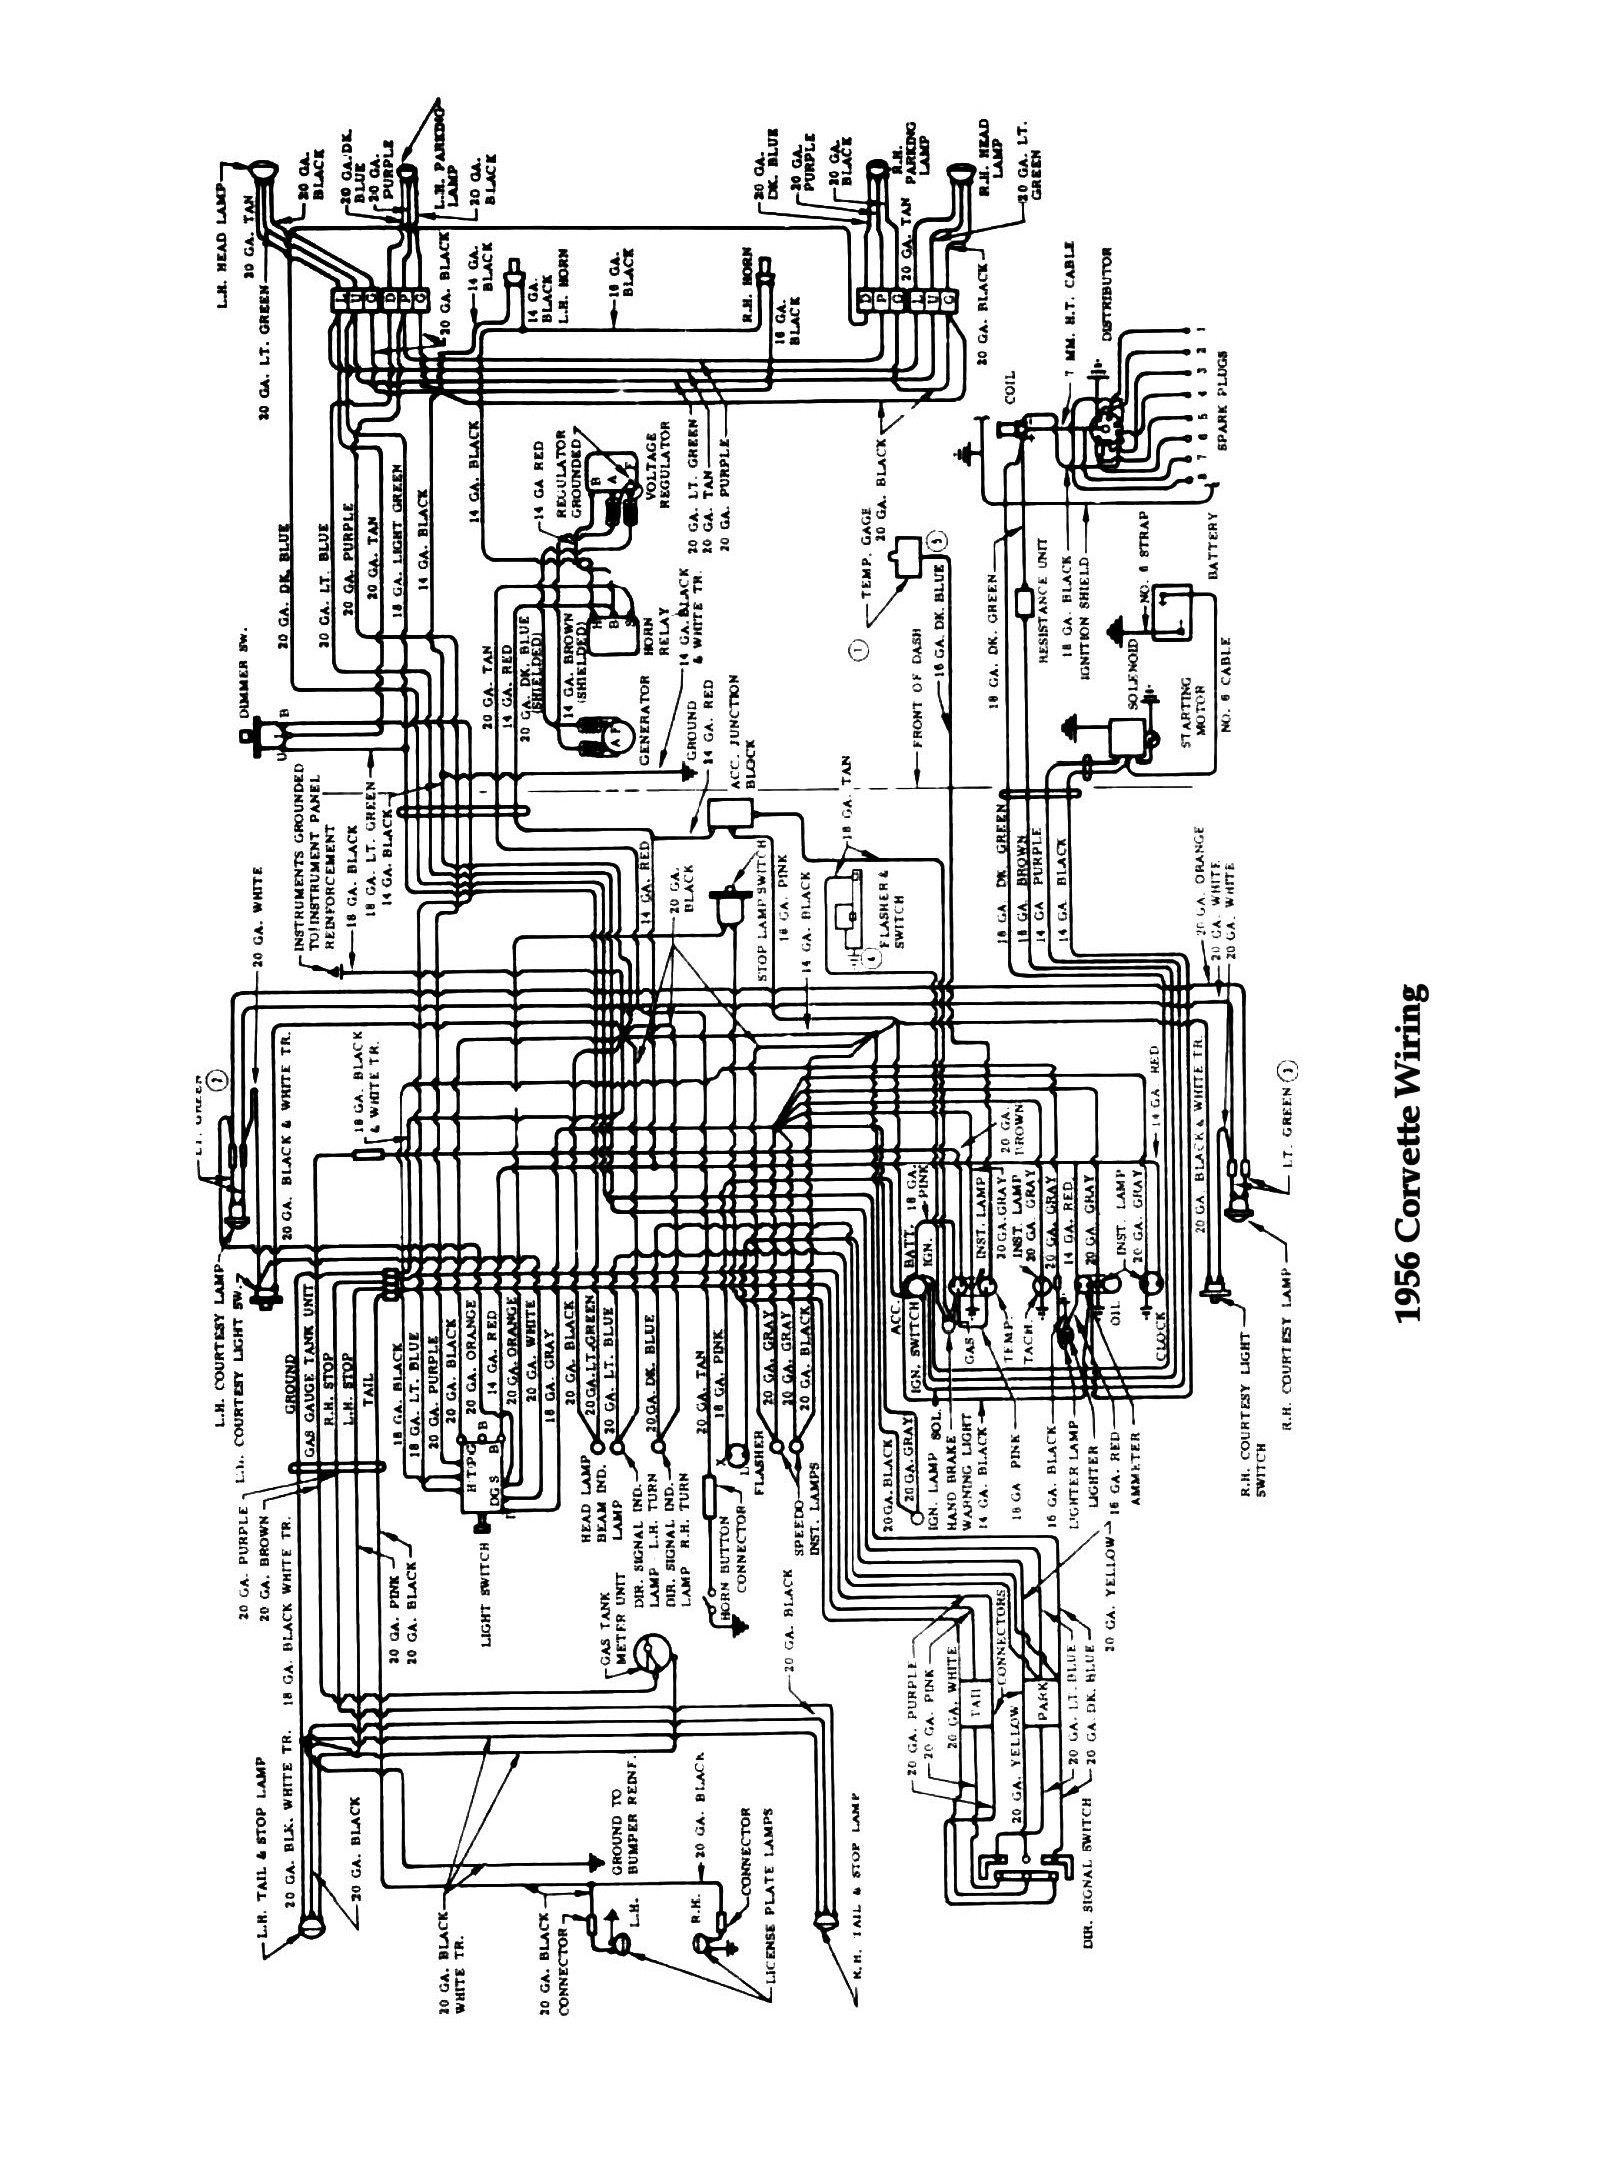 [WRG-3991] 1958 Chevy Wiring Diagram